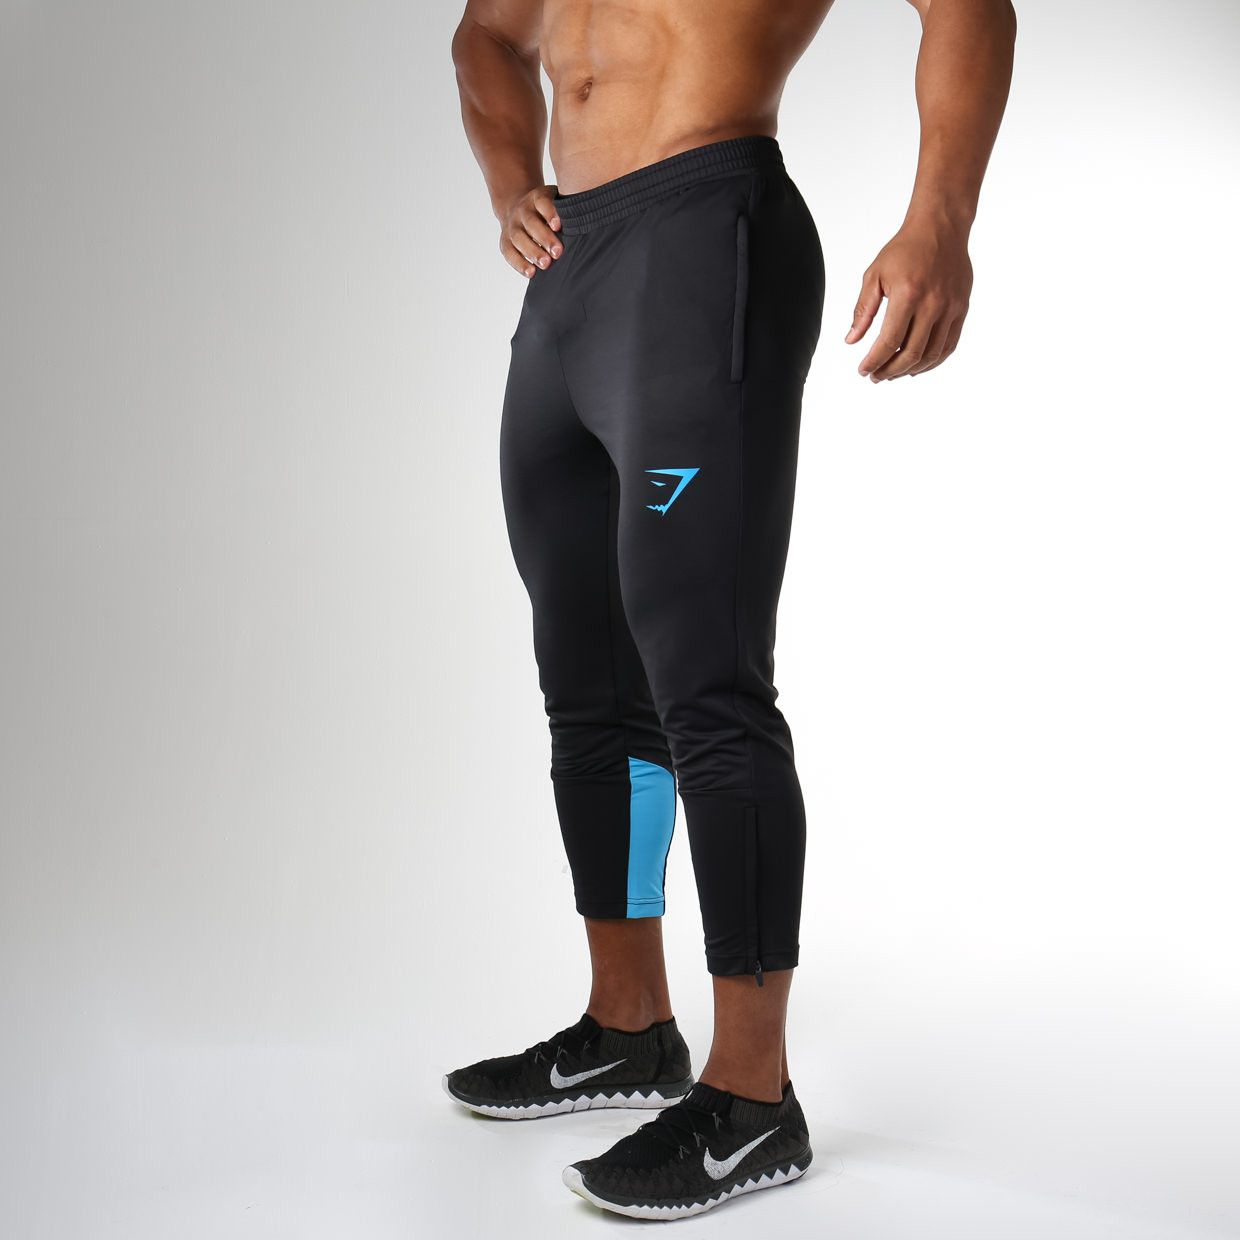 Gymshark Reactive 3 4 Training Pant - Black Gymshark Blue  0cb766a728ea